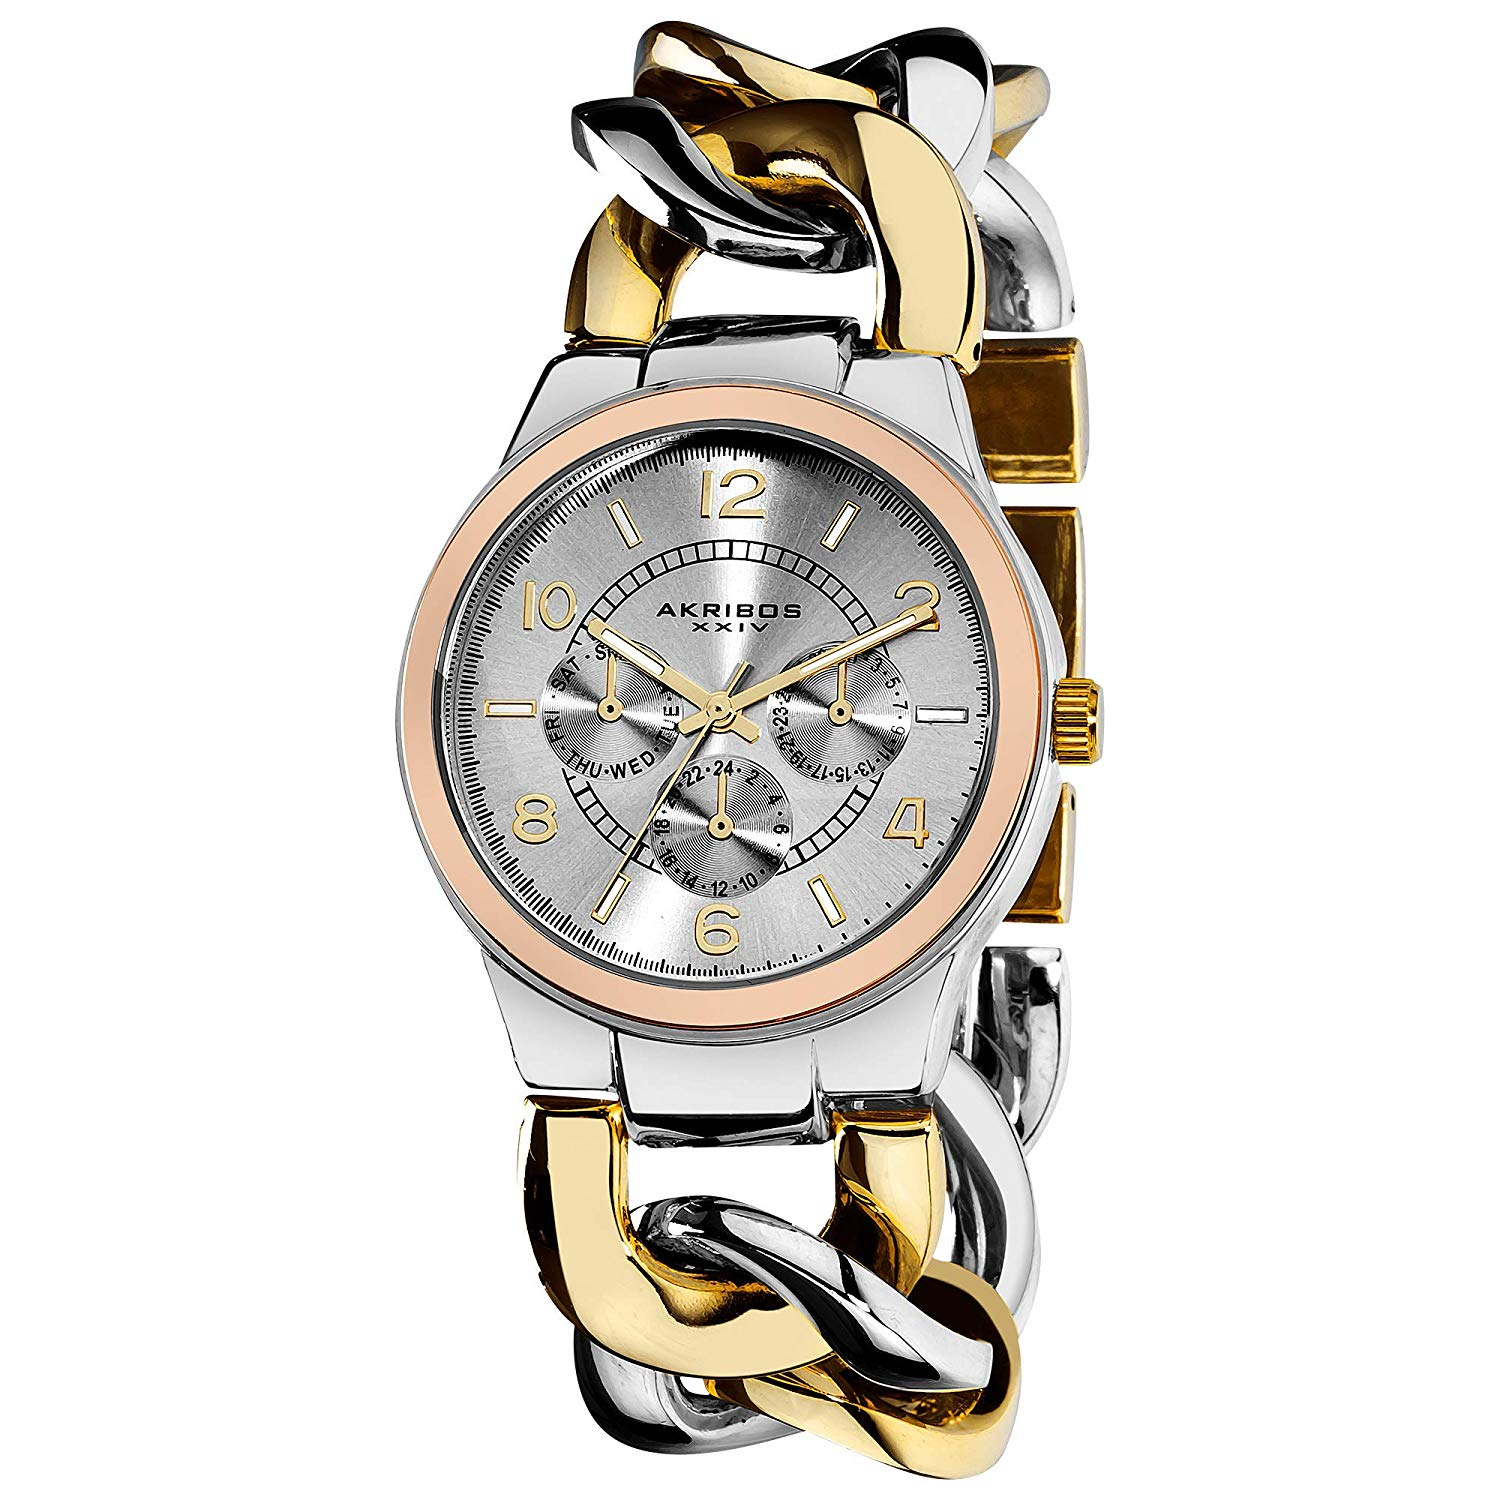 Akribos XXIV Women\'s Multifunction Watch.